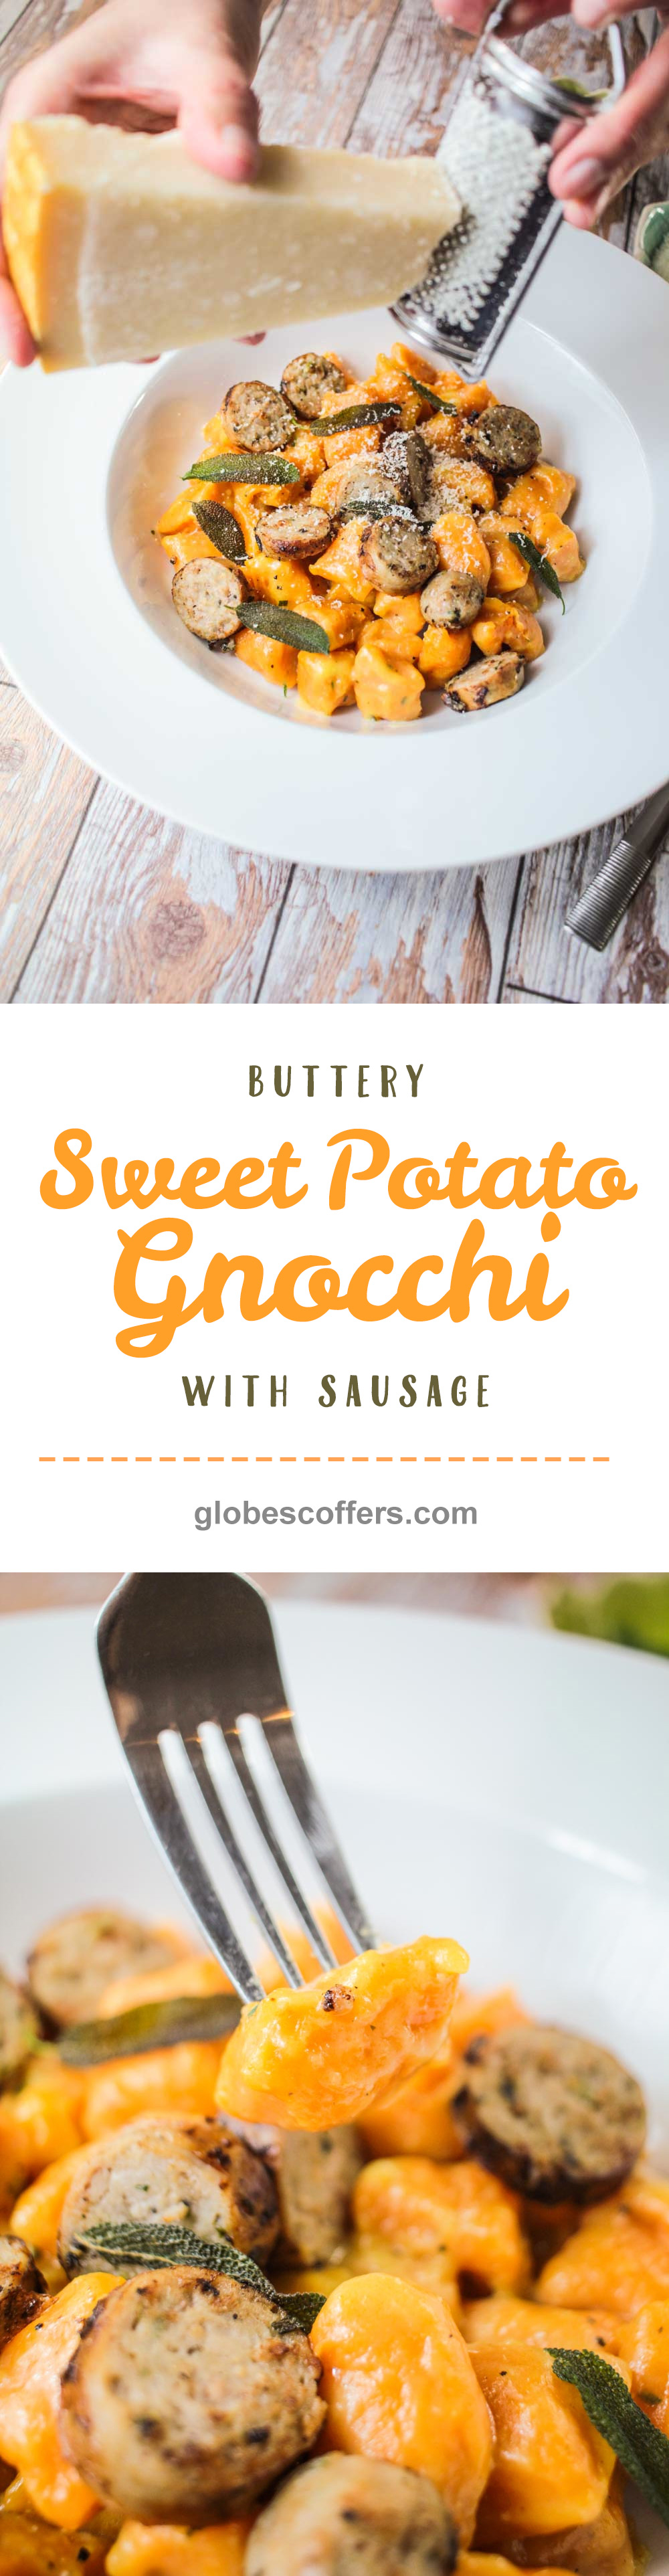 Buttery Sweet Potato Gnocchi with Sausage - globescoffers.com